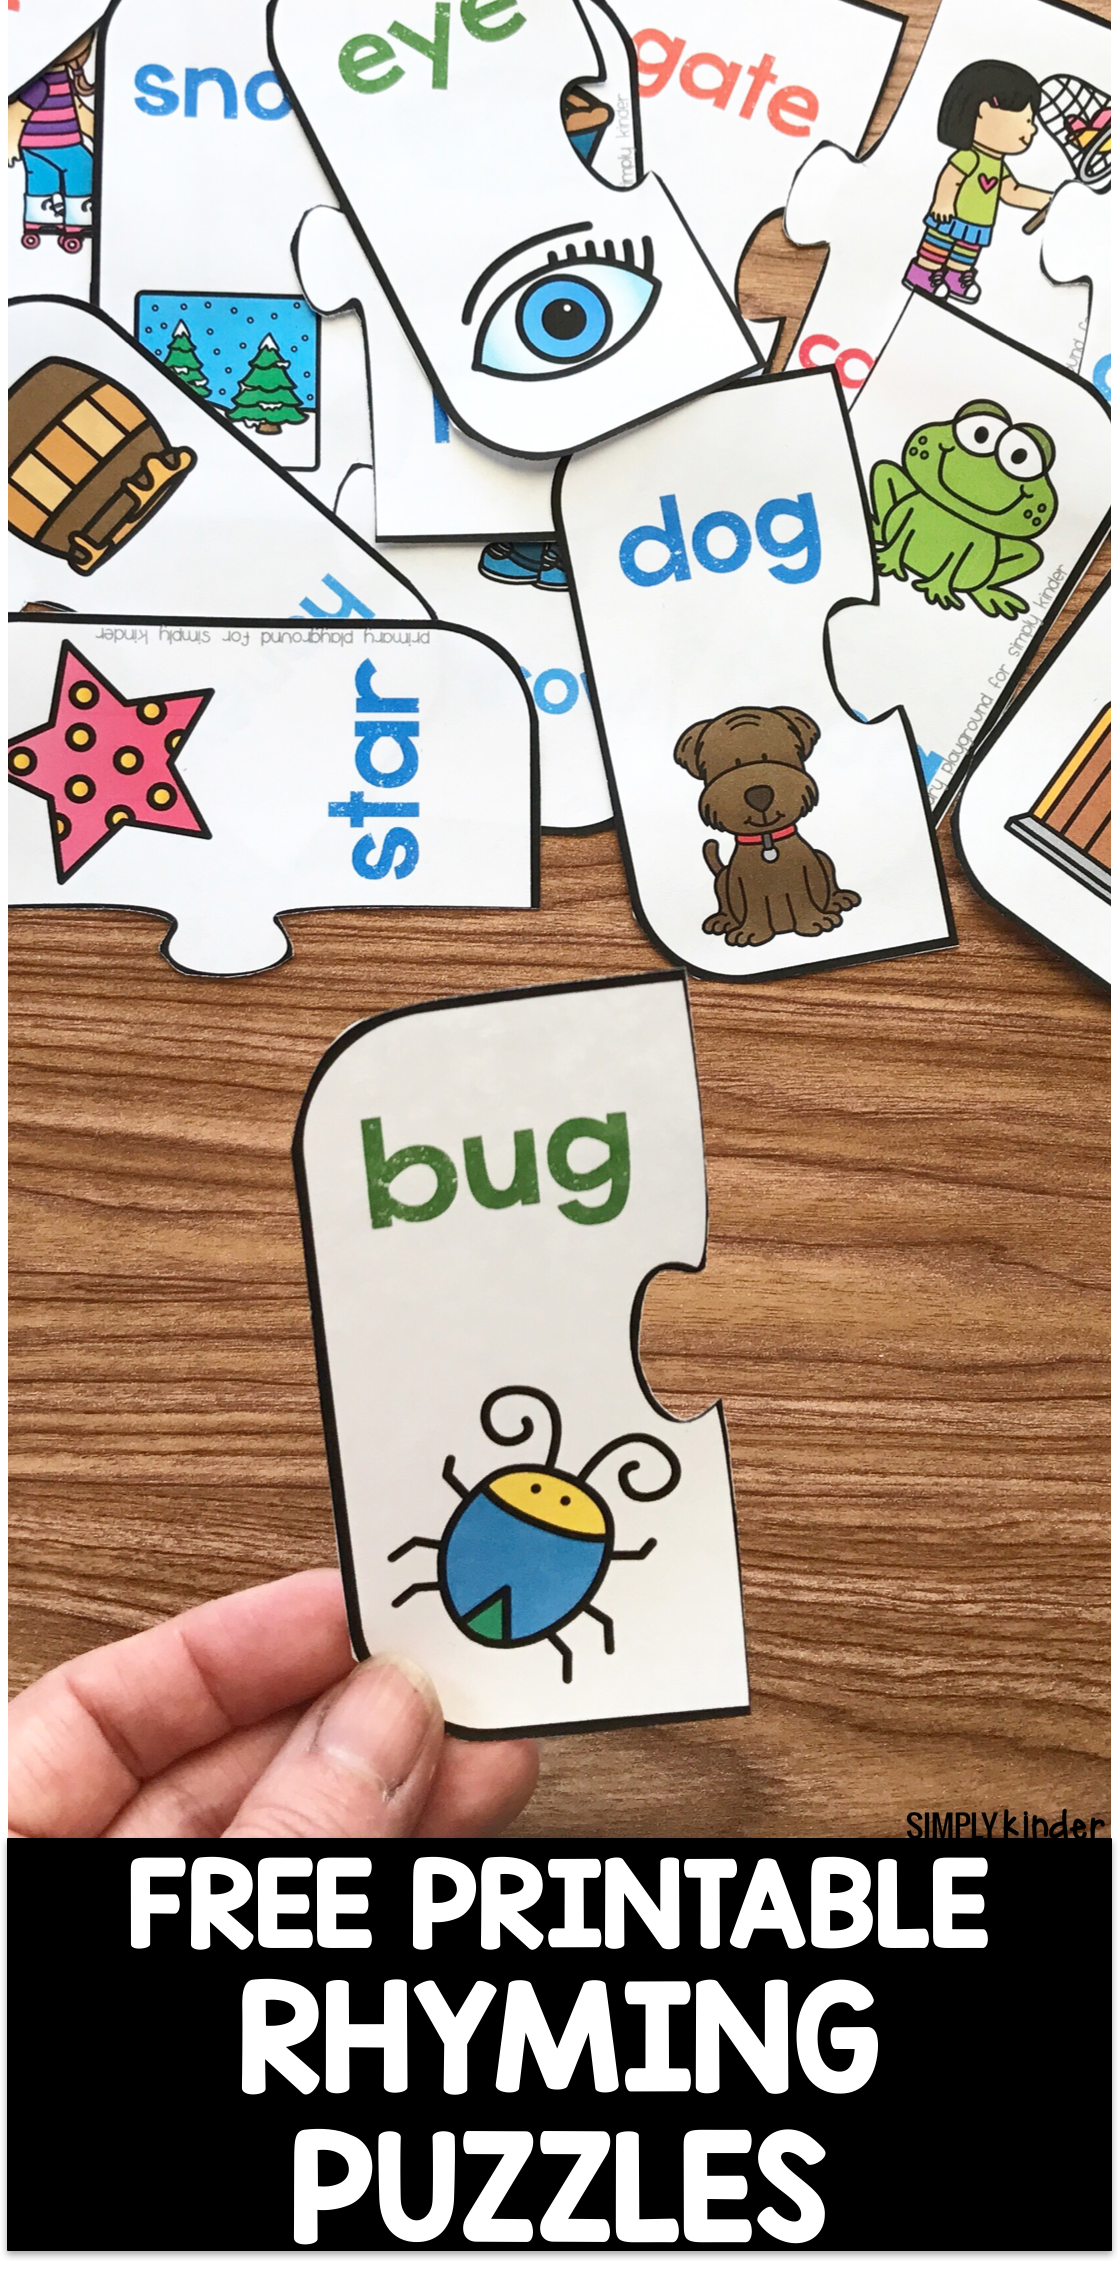 Free Printable Rhyming Puzzles